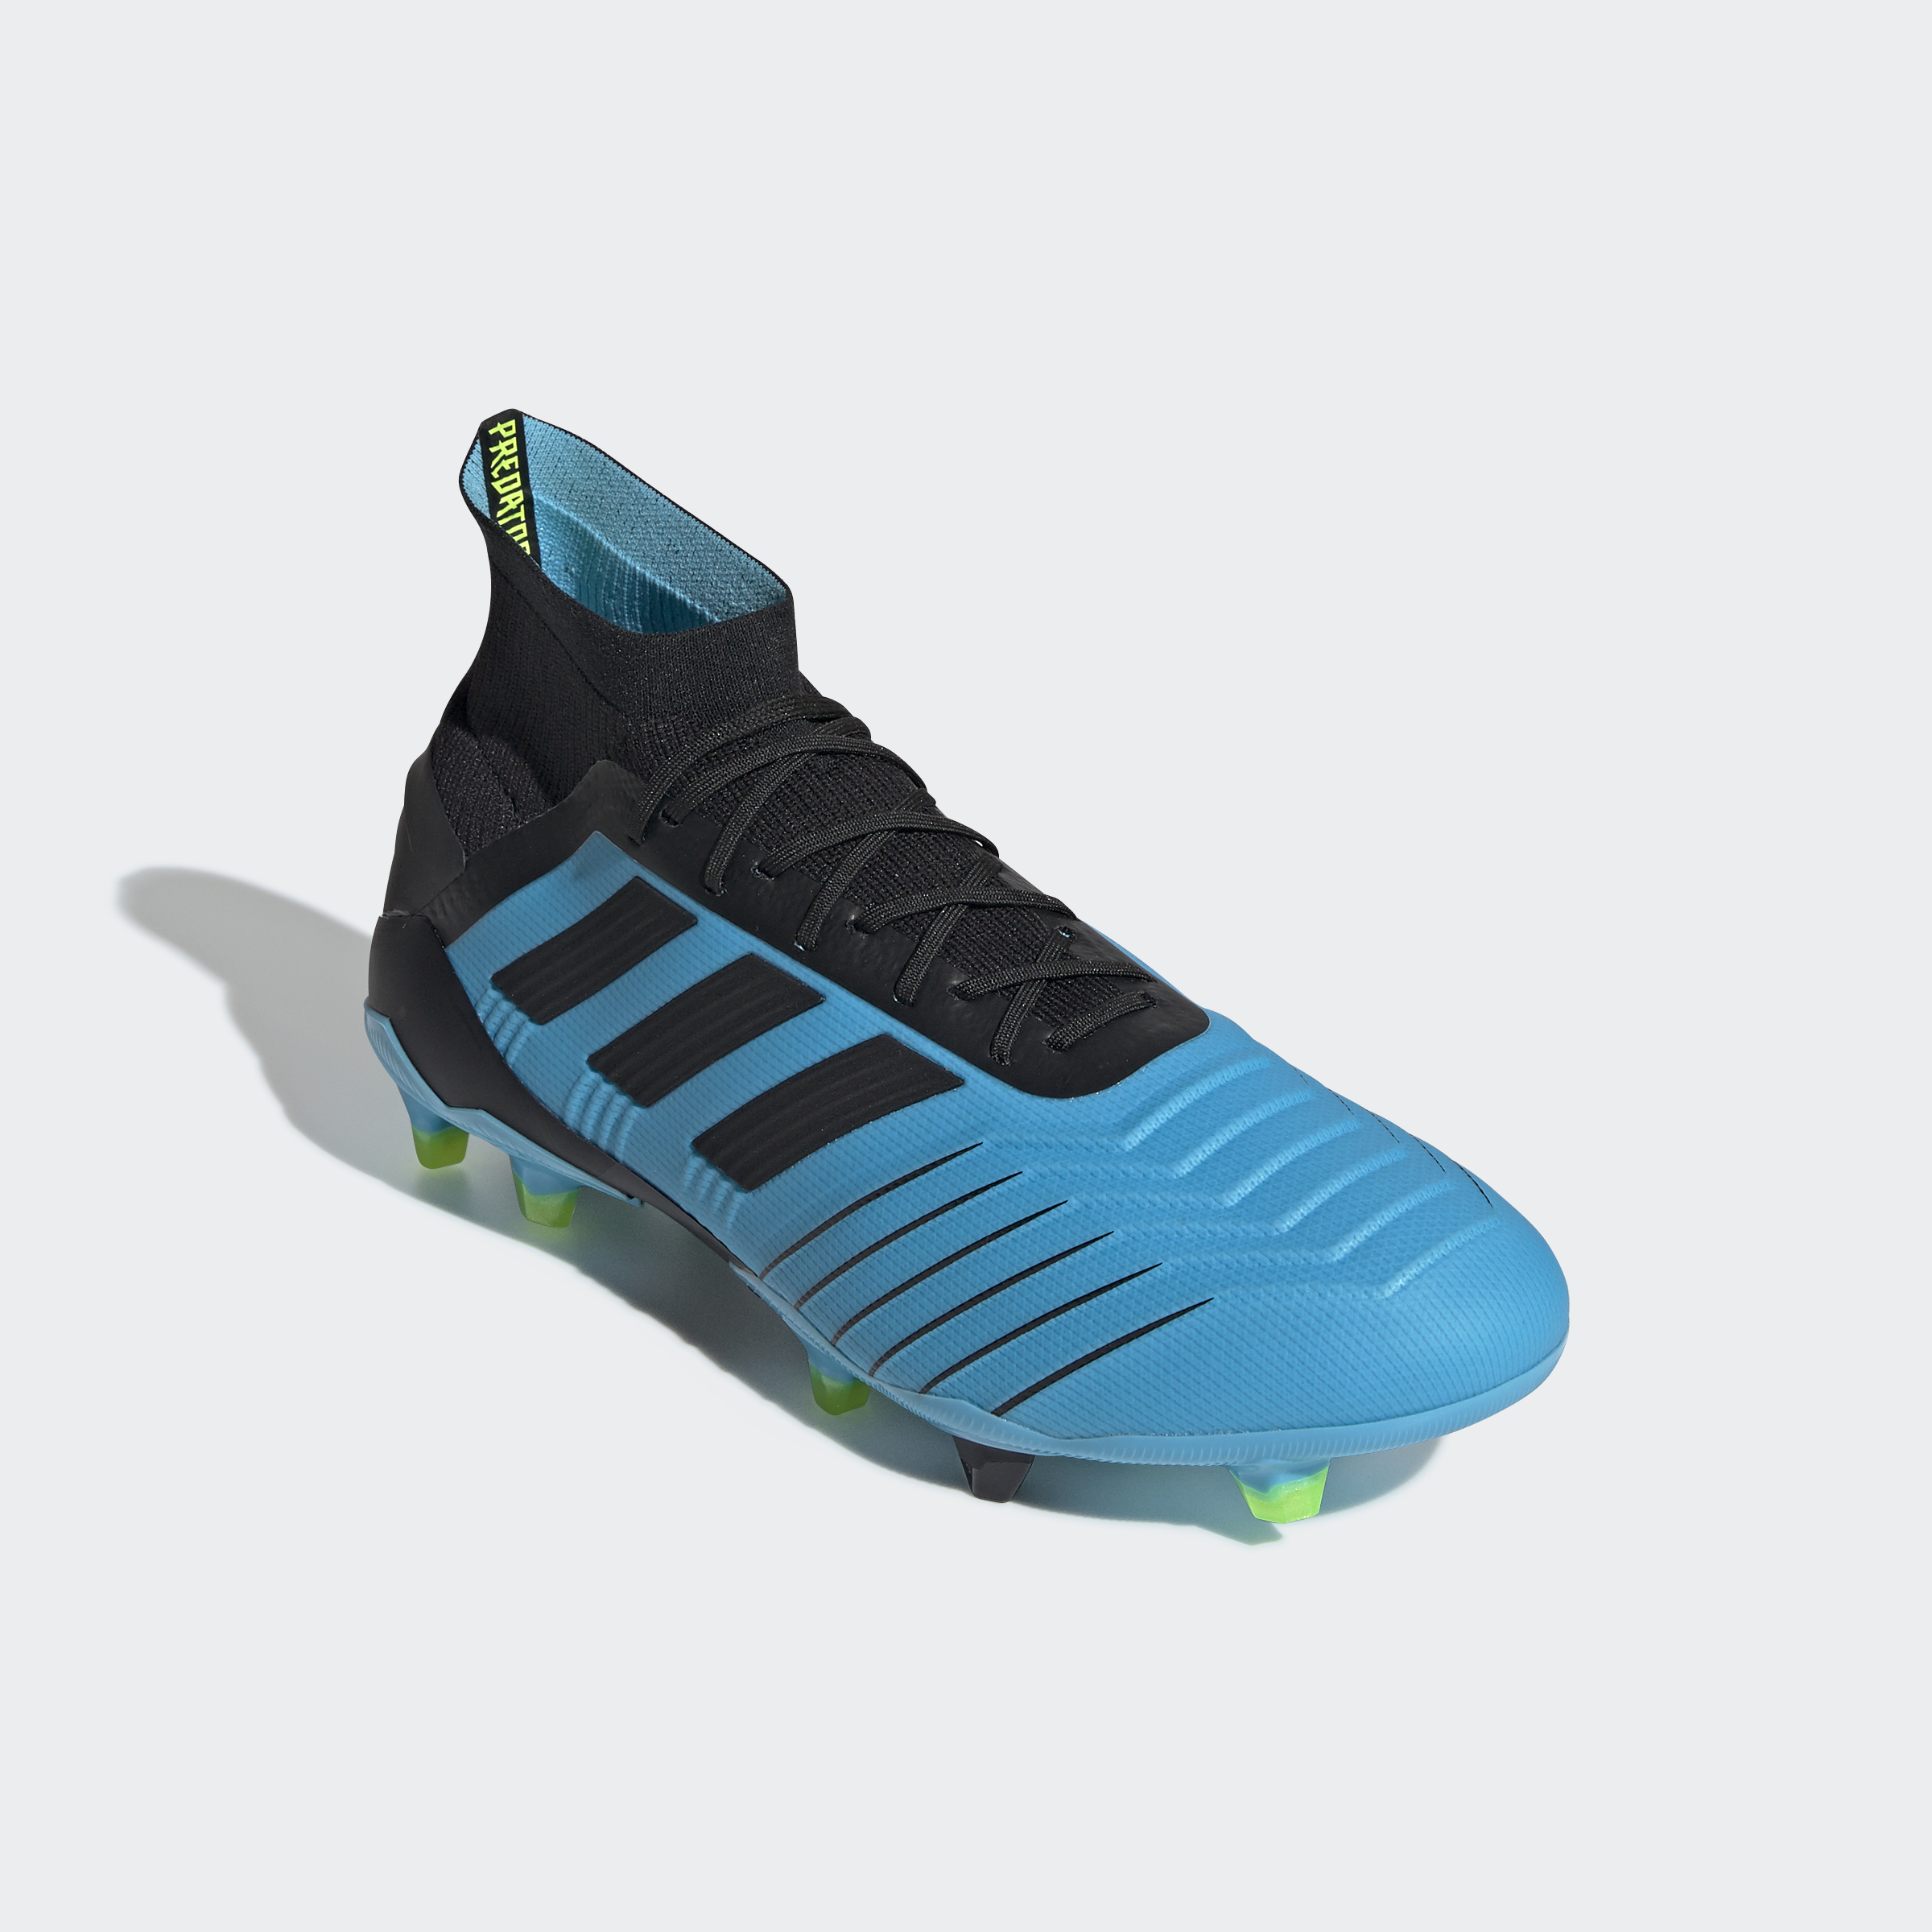 adidas-Predator-19-1-Firm-Ground-Cleats-Football-Boots thumbnail 24